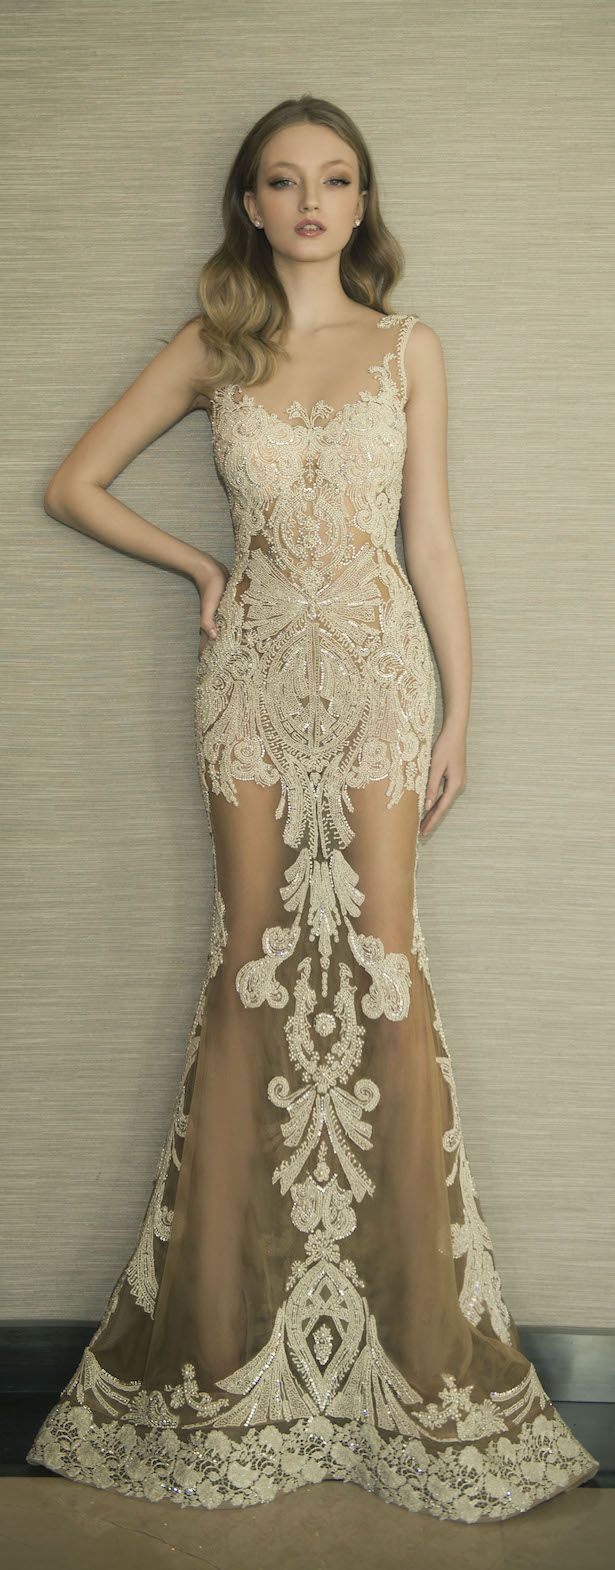 best images about perfect dress on pinterest resorts paolo